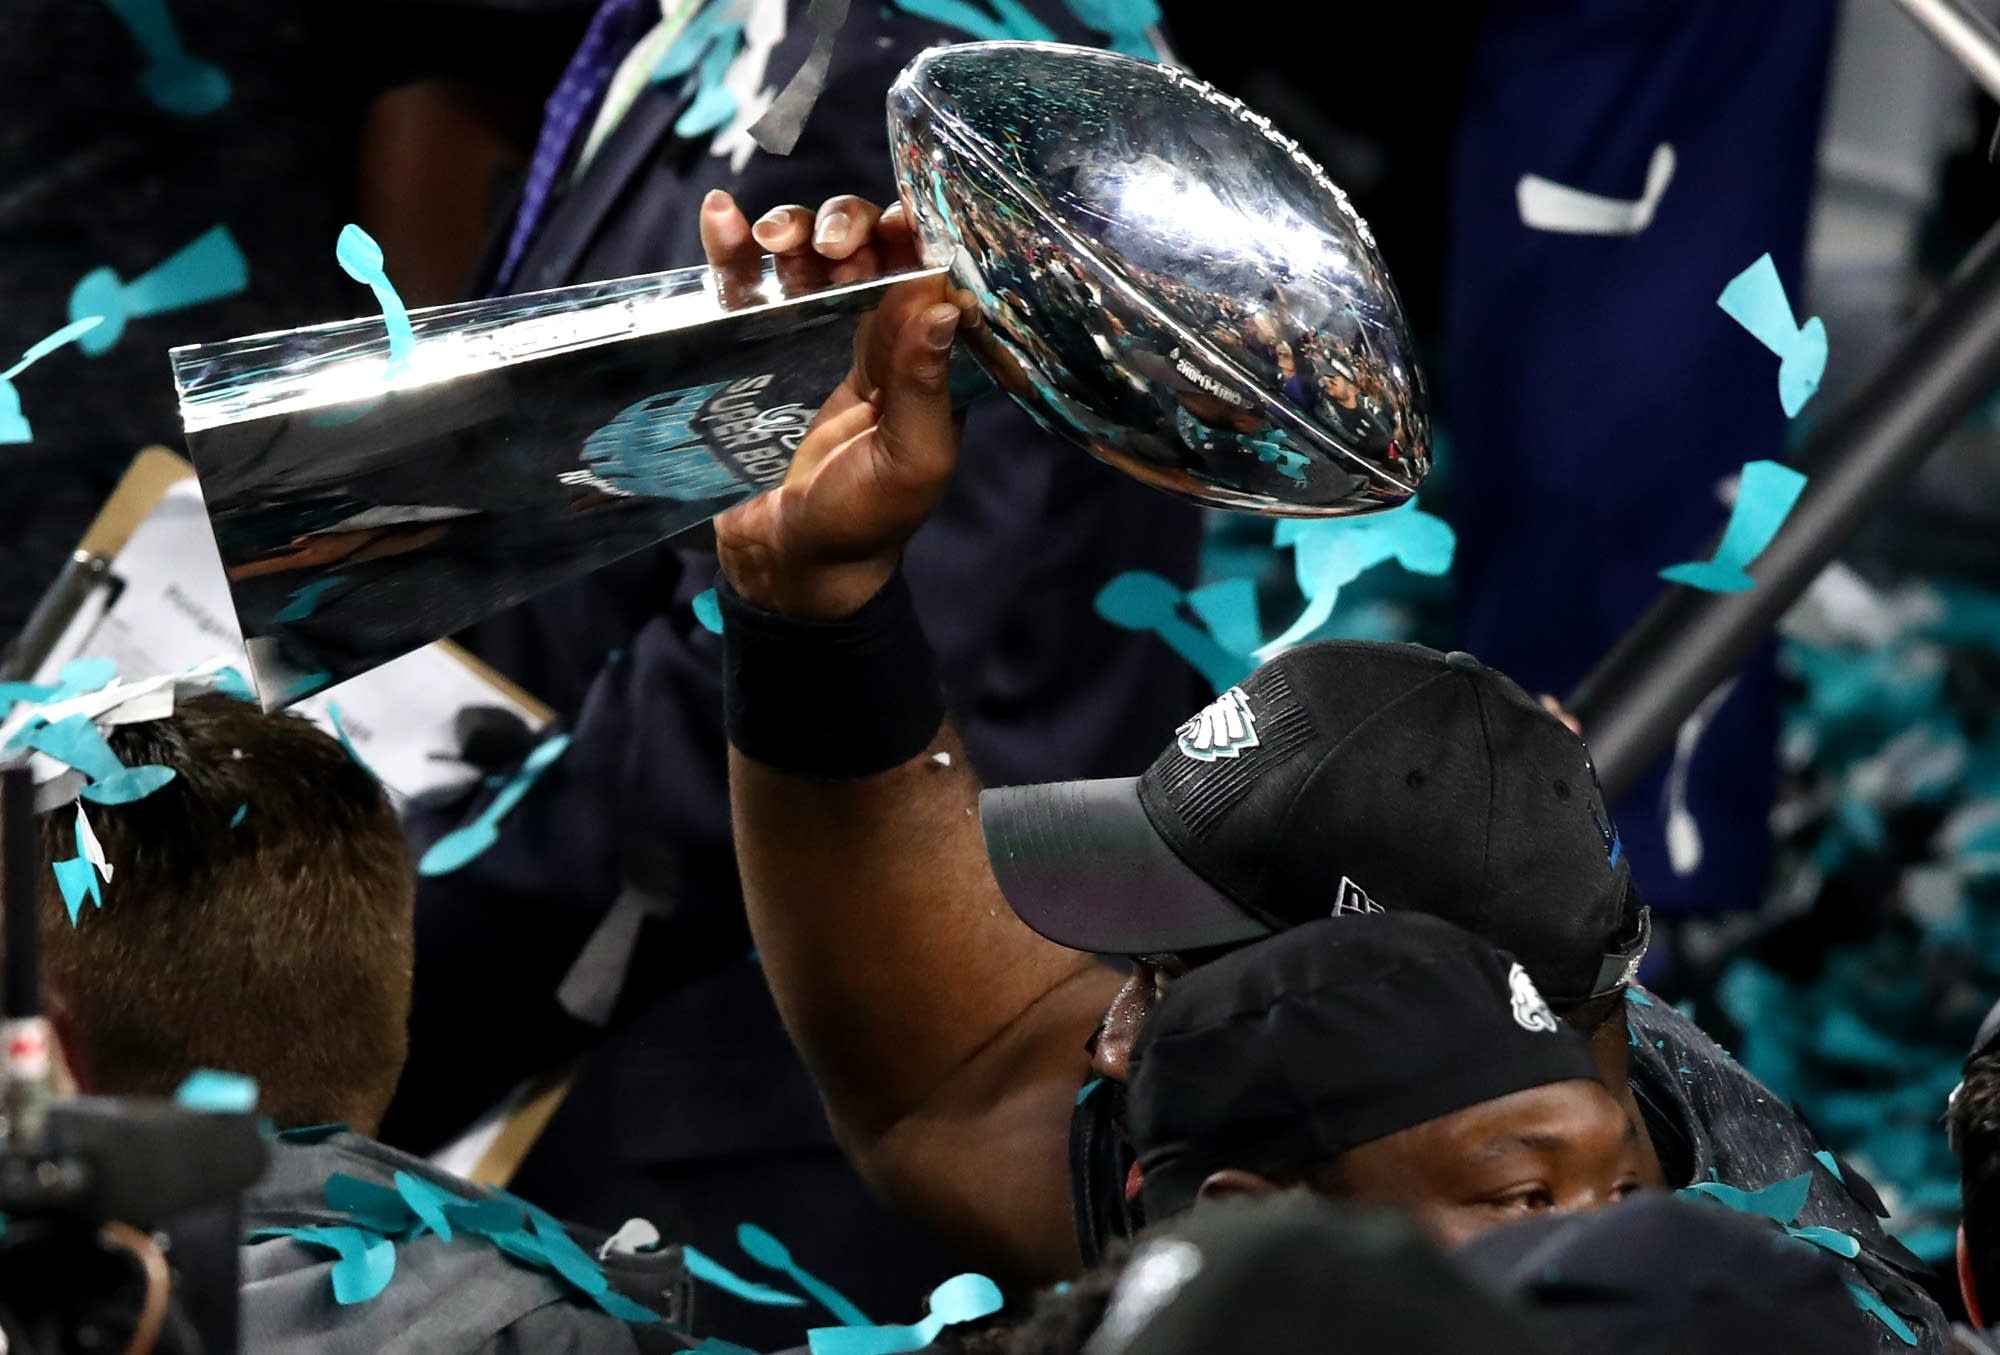 The Philadelphia Eagles celebrate after defeating the New England Patriots.